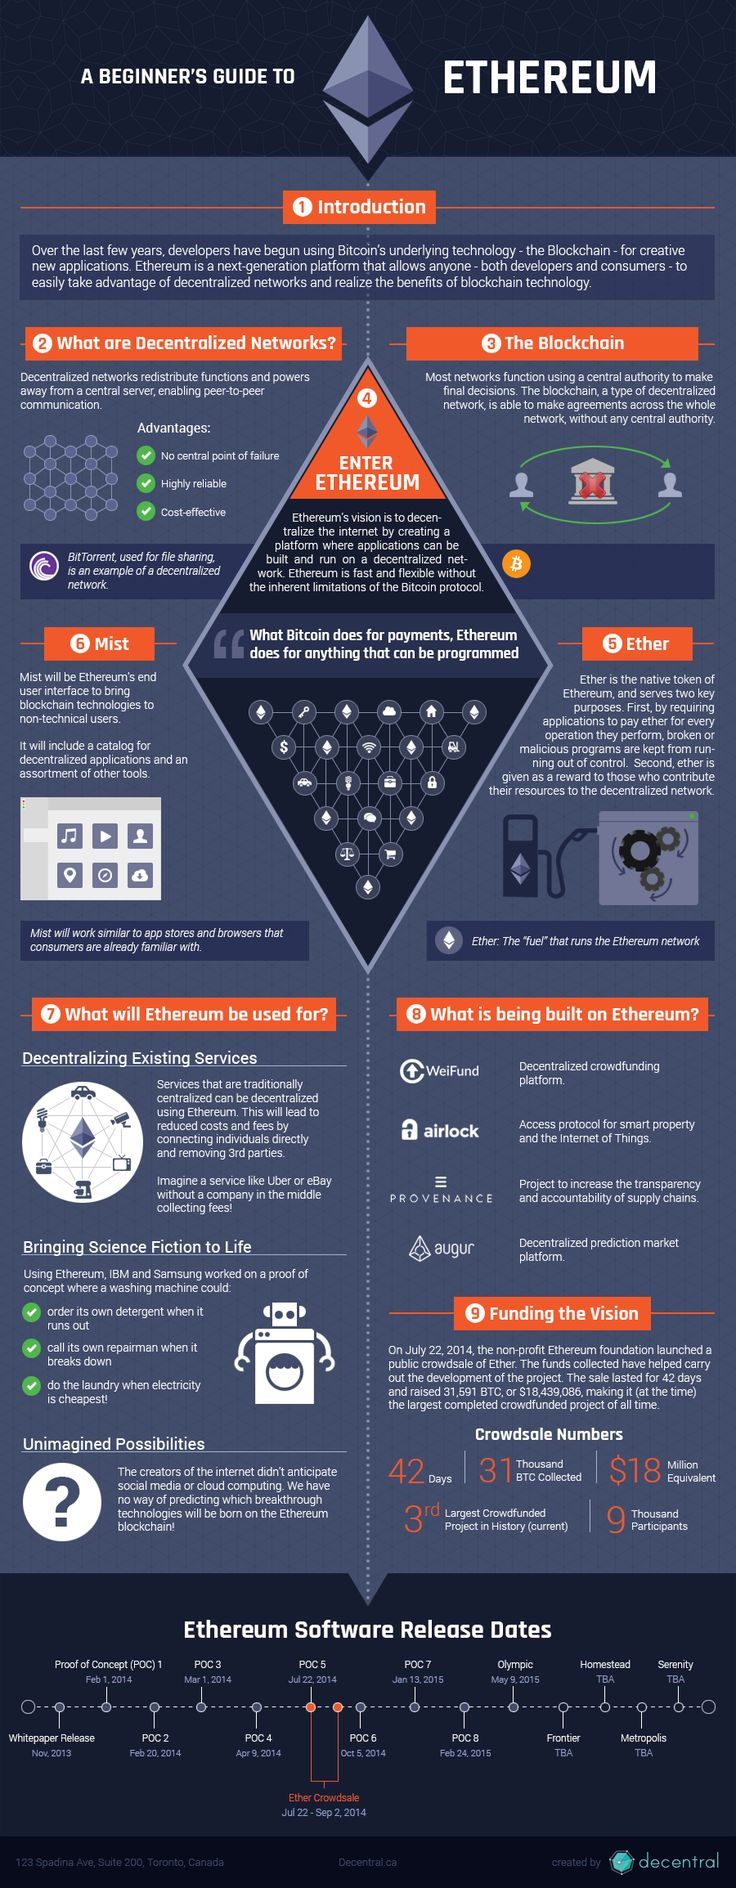 Ethereum [Infographic] - Beginners Guide - Here is how to Get your ethers - start http://po.st/mining Keep your cryptos safe in Bitcoin #Ethereum Altcoins hardware http://po.st/ᴡᴀʟʟᴇᴛ based on robust safety features for storing cryptographic assets & securing digital payments. It connects to any computer (USB) w/ OLED display to check & confirm each transaction. Consider newest Blue http://po.st/ledger as best, universal cryptowallet & most advanced hardware security gear on the market…